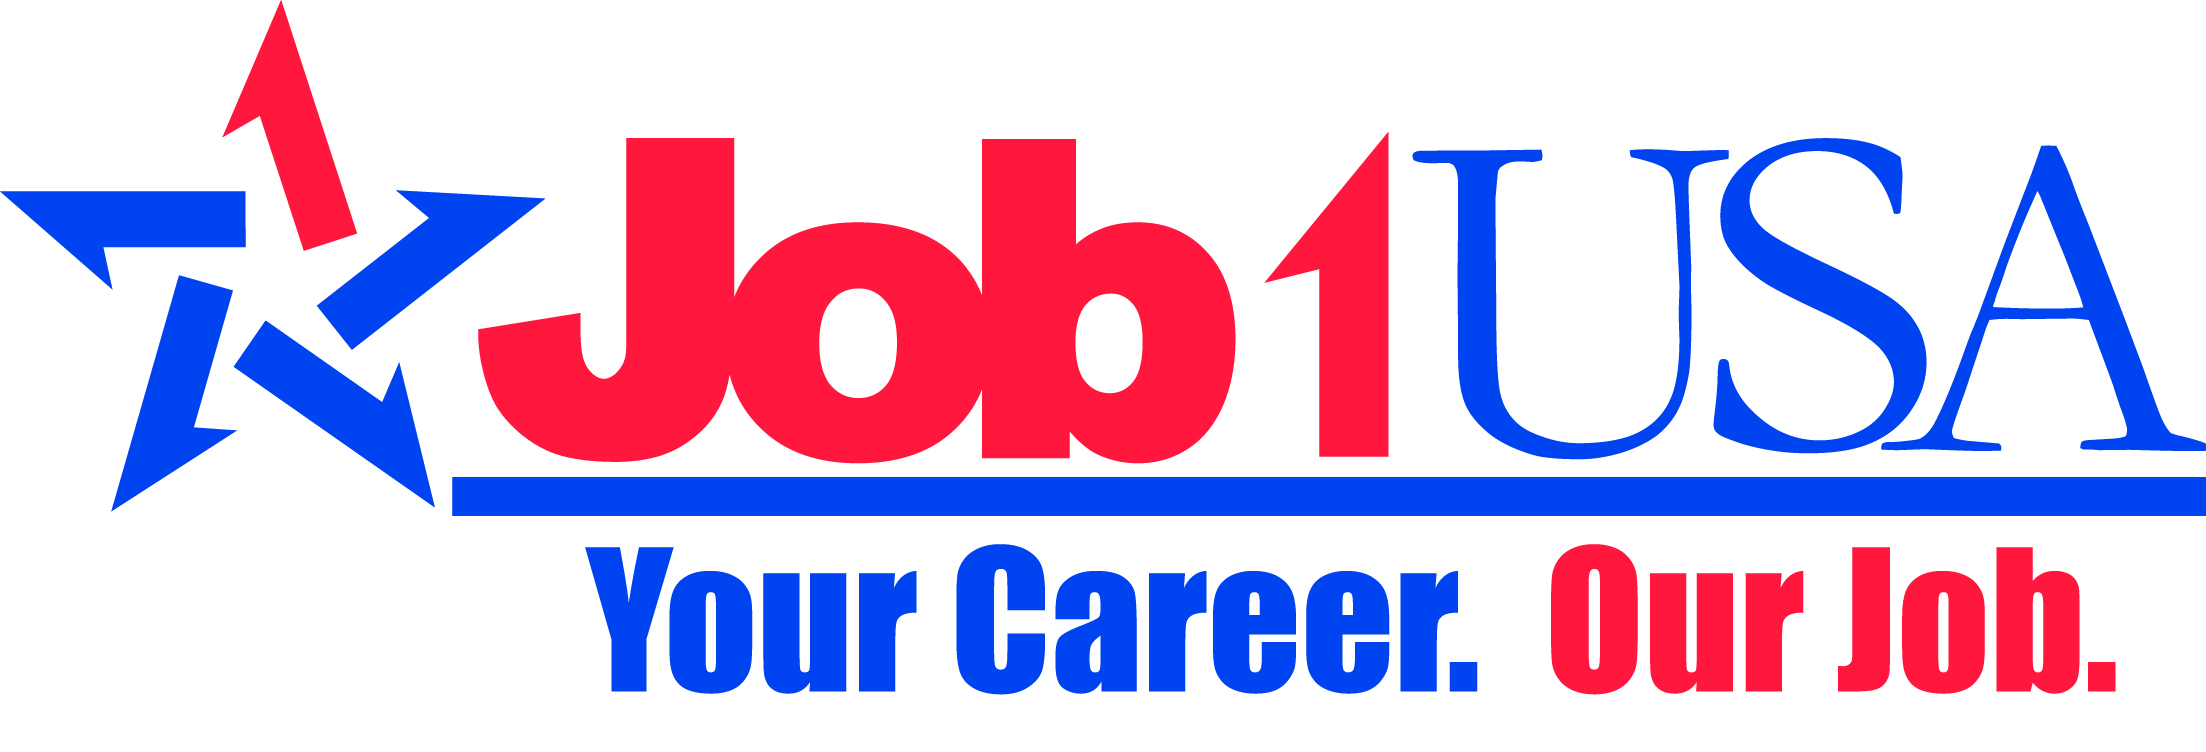 Corporate - Job1USA - Your Career Our Job - Large 300dpi.jpg